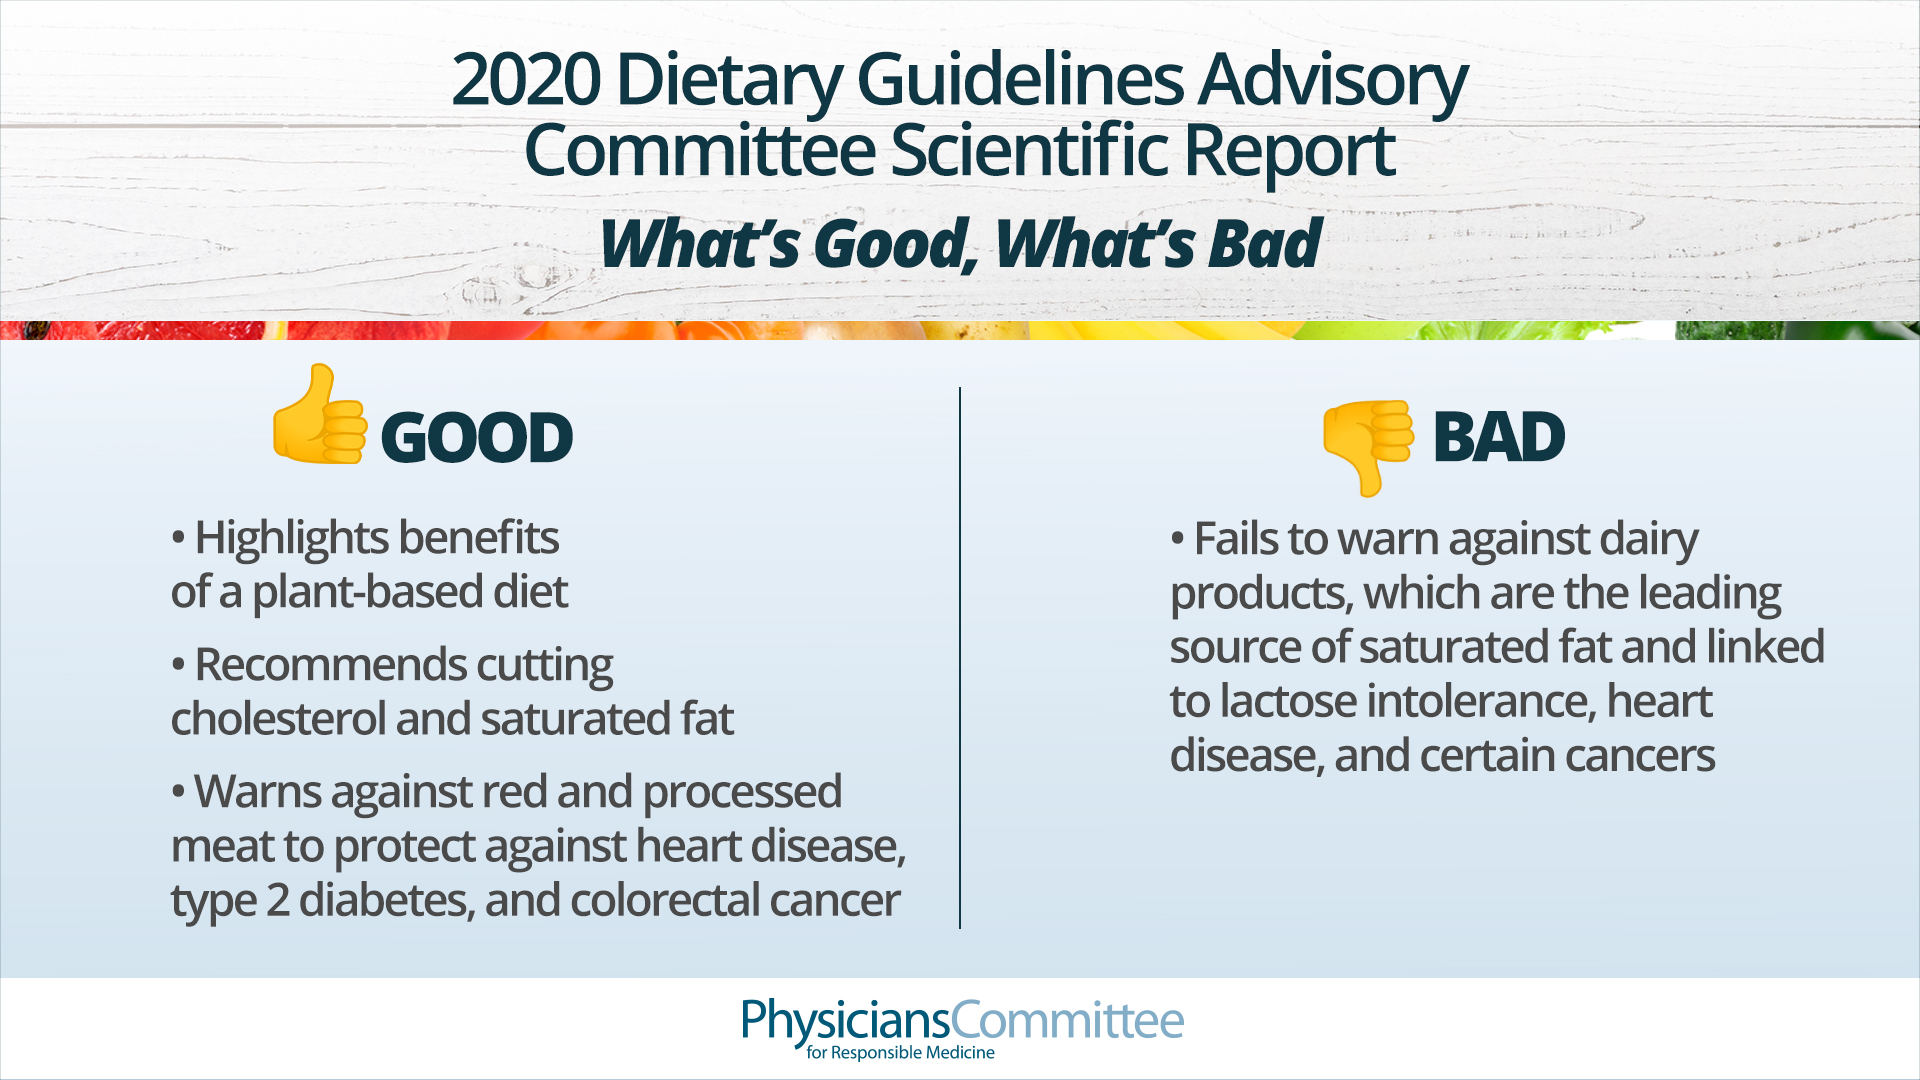 Dietary Guidelines Report Right on Eating Plant-Based Diet, Avoiding Saturated Fat, Meat, Cholesterol